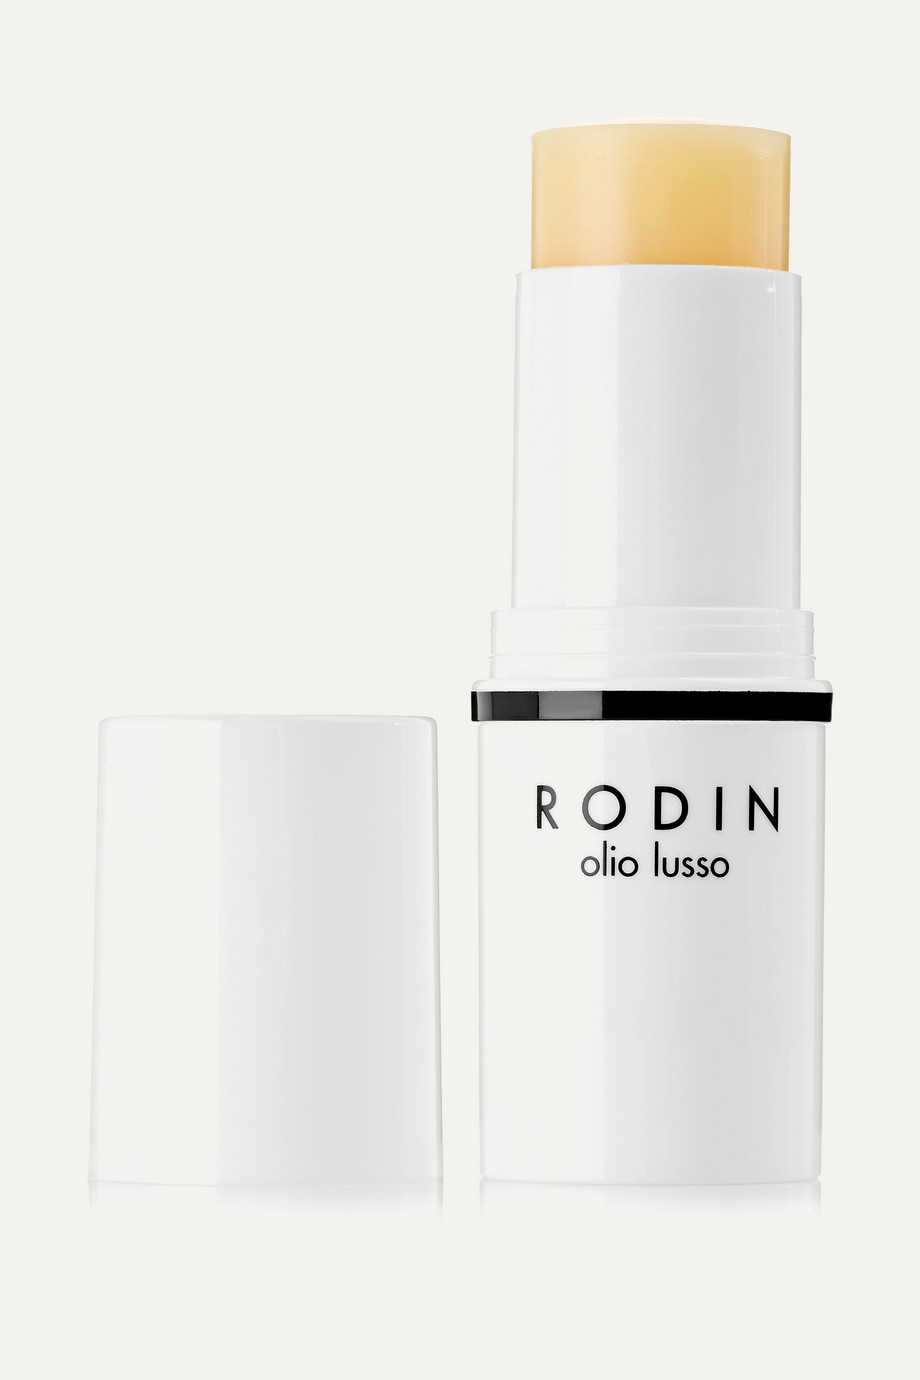 Rodin Luxury Face Oil Stick - Geranium & Orange Blossom, 11g